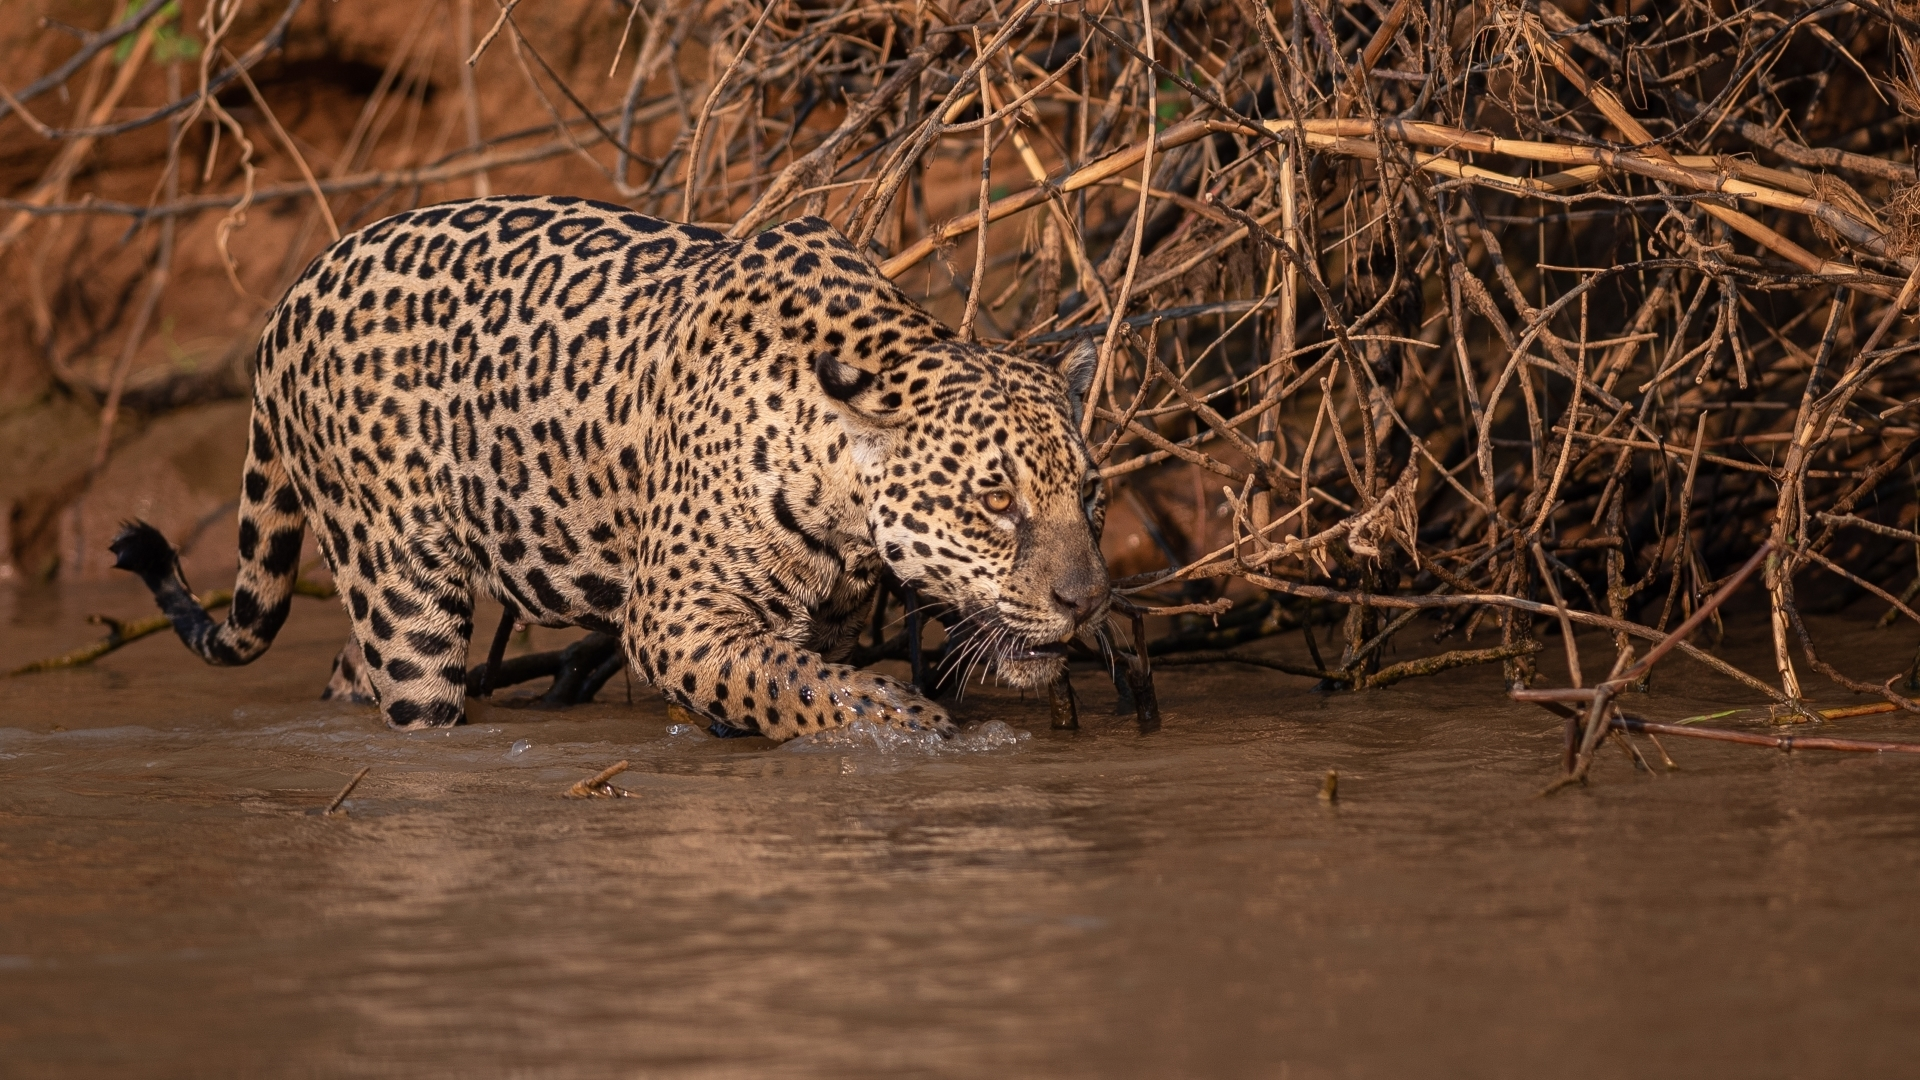 A-jaguar-Panthera-onca-hunts-for-caiman-along-the-waters-edge-in-the-Pantanal-region-of-Brazil.-NM-Best-In-Show-by-Jennifer-ODonnell-PE